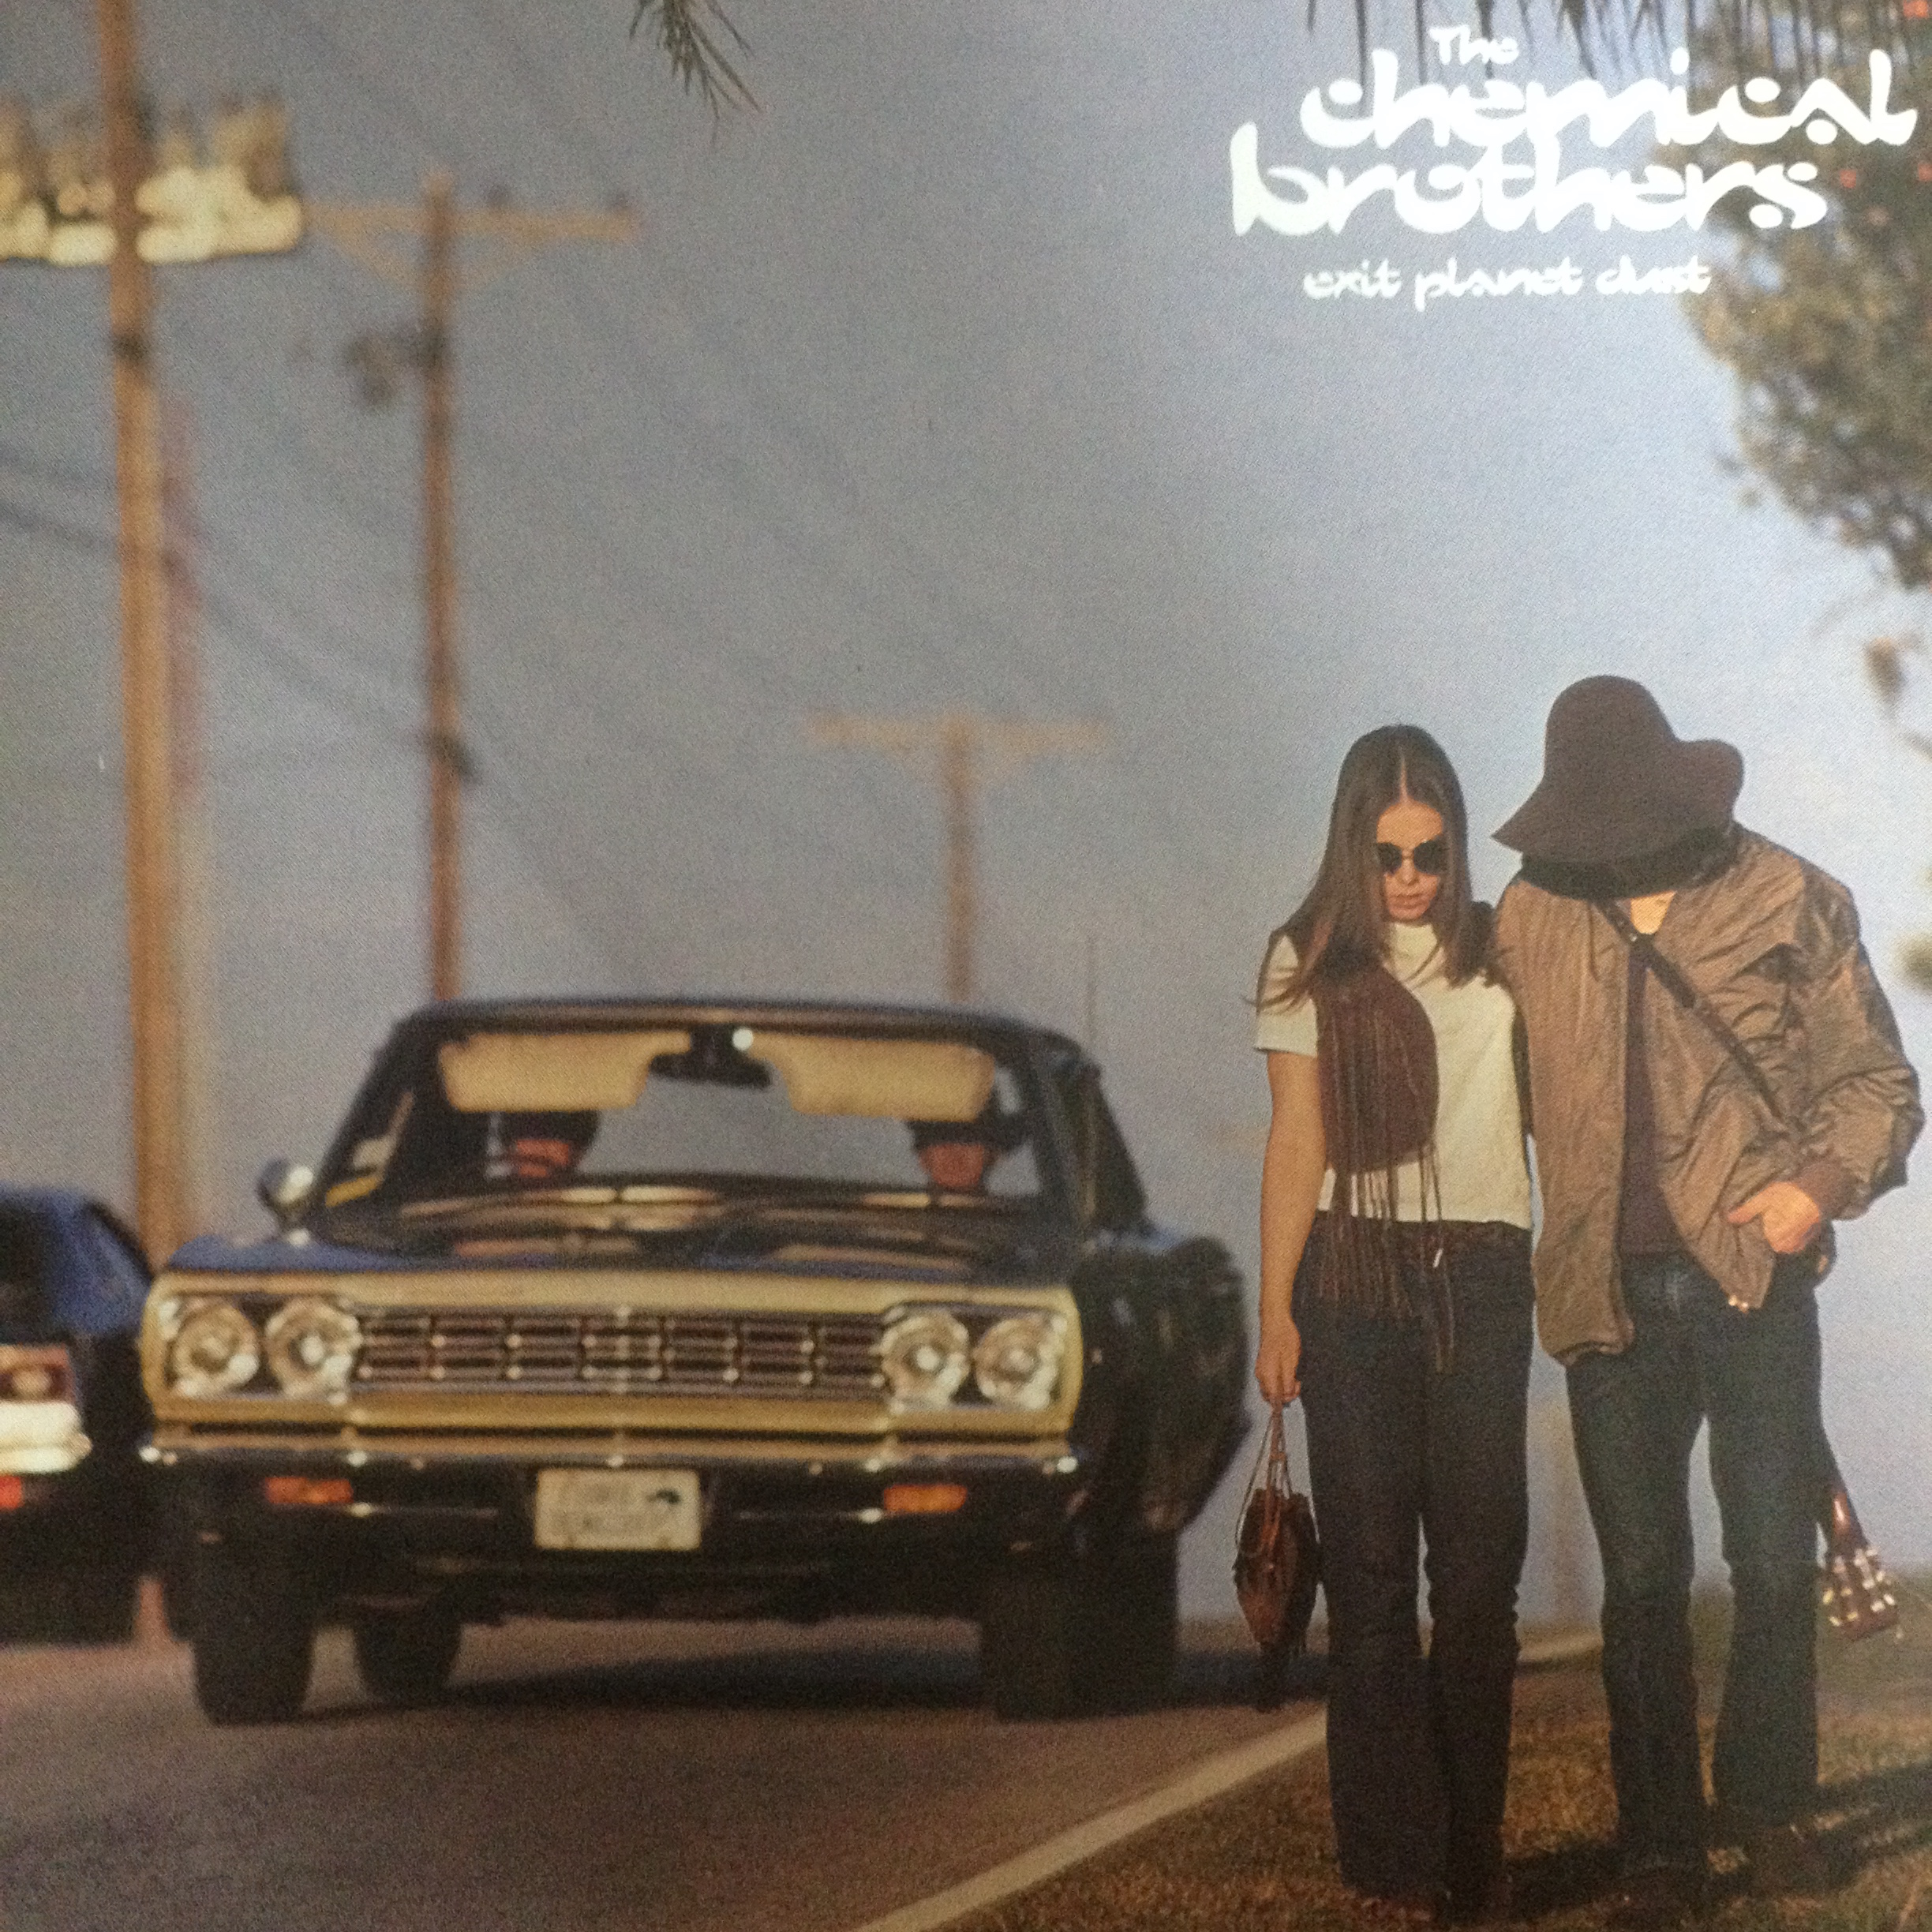 The chemical brothers 「Leave Home」